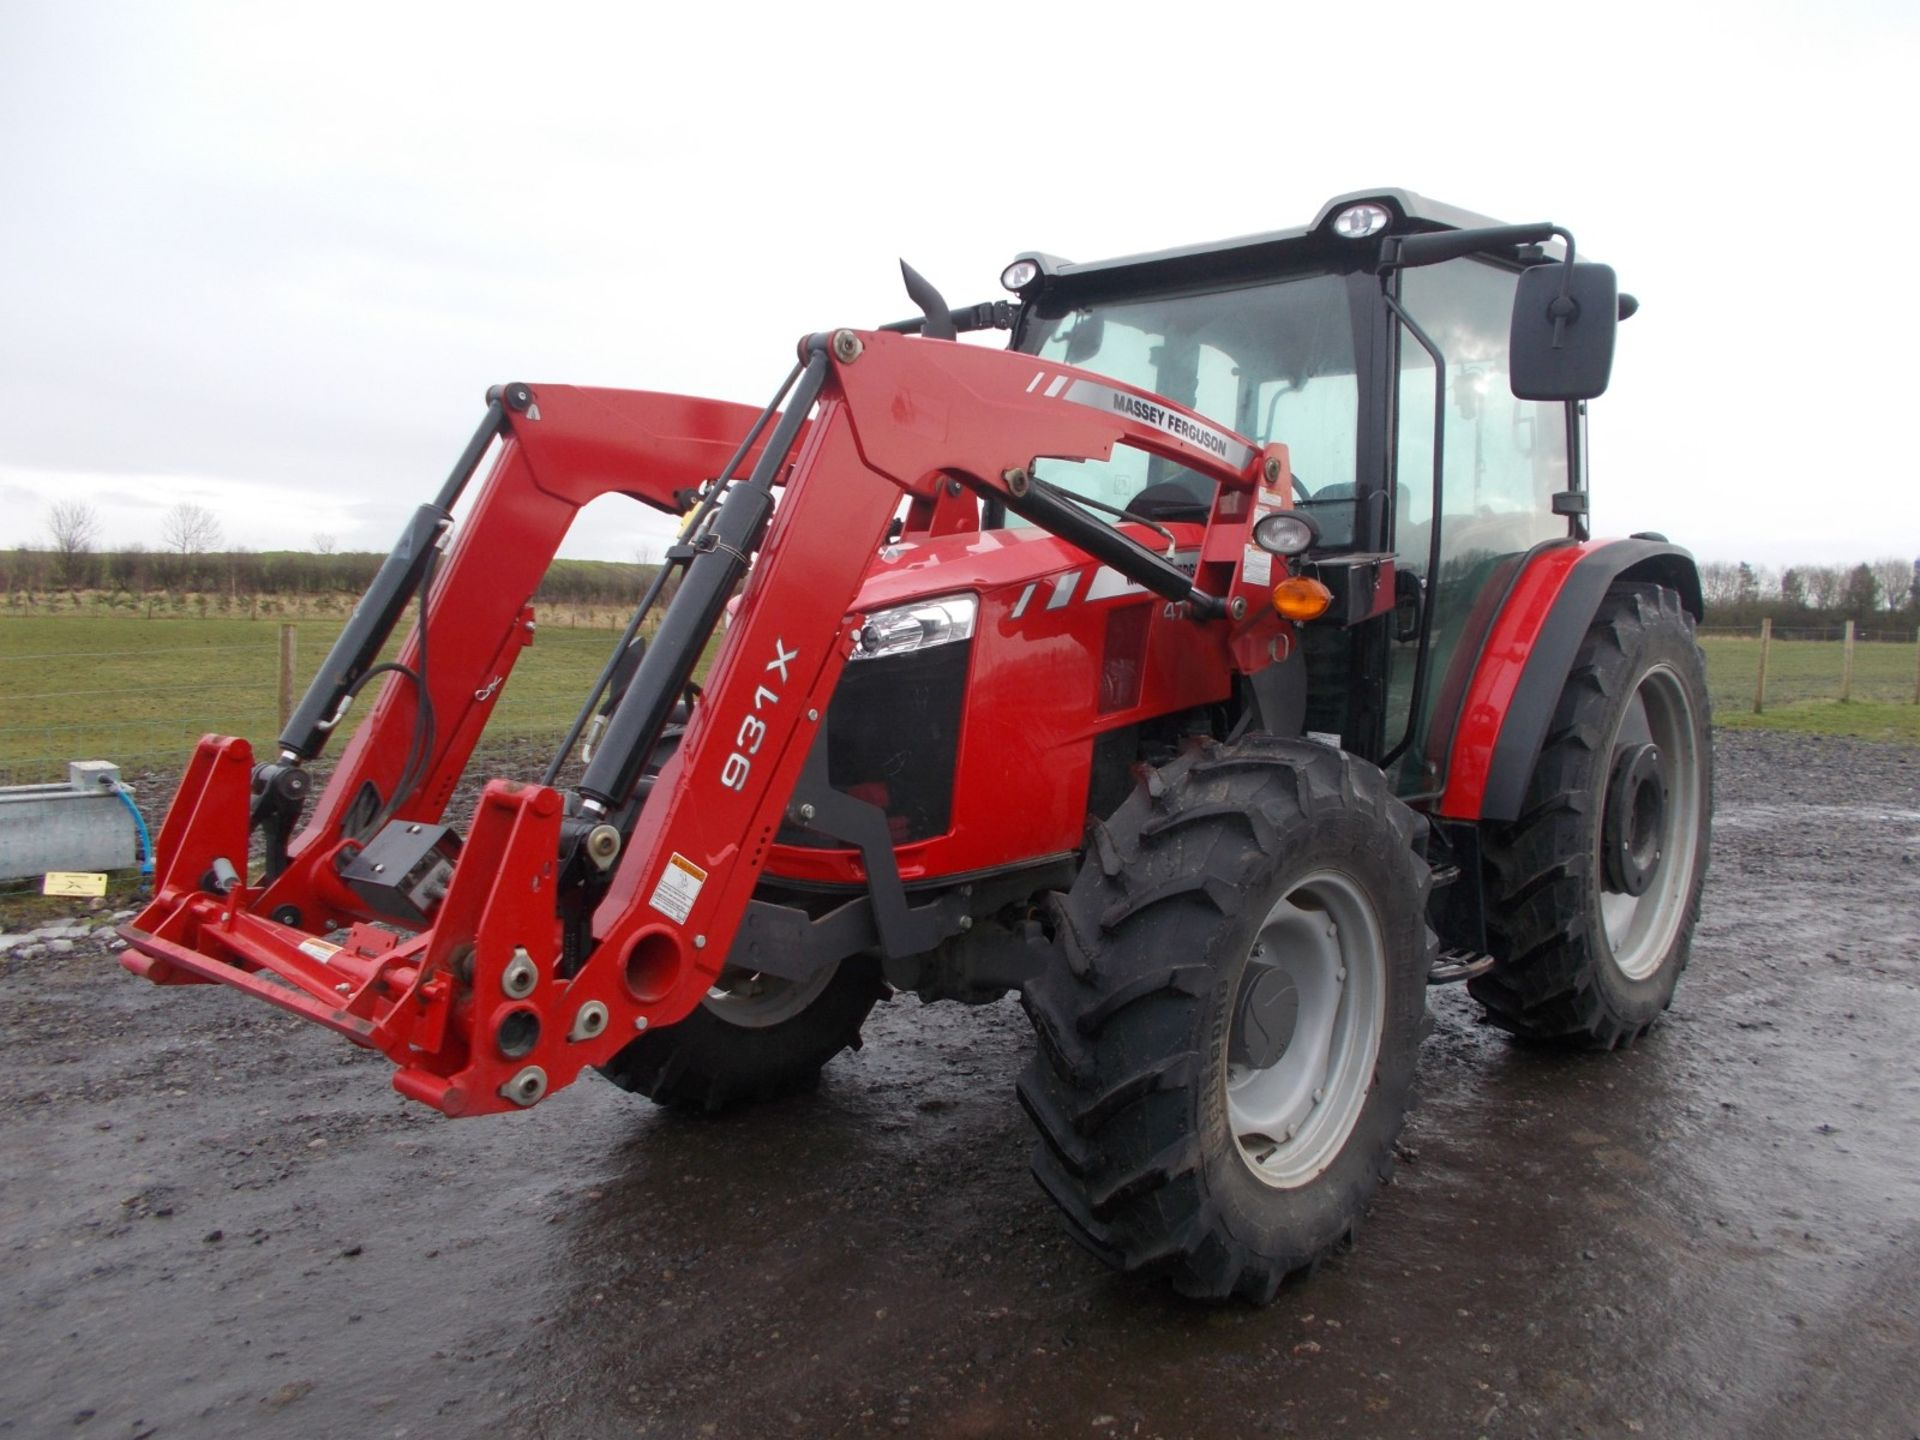 2018 MASSEY FERGUSON 4710 4WD TRACTOR WITH LOADER, AGCO 3.3 LITRE 3CYL TURBO DIESEL *PLUS VAT* - Image 8 of 21